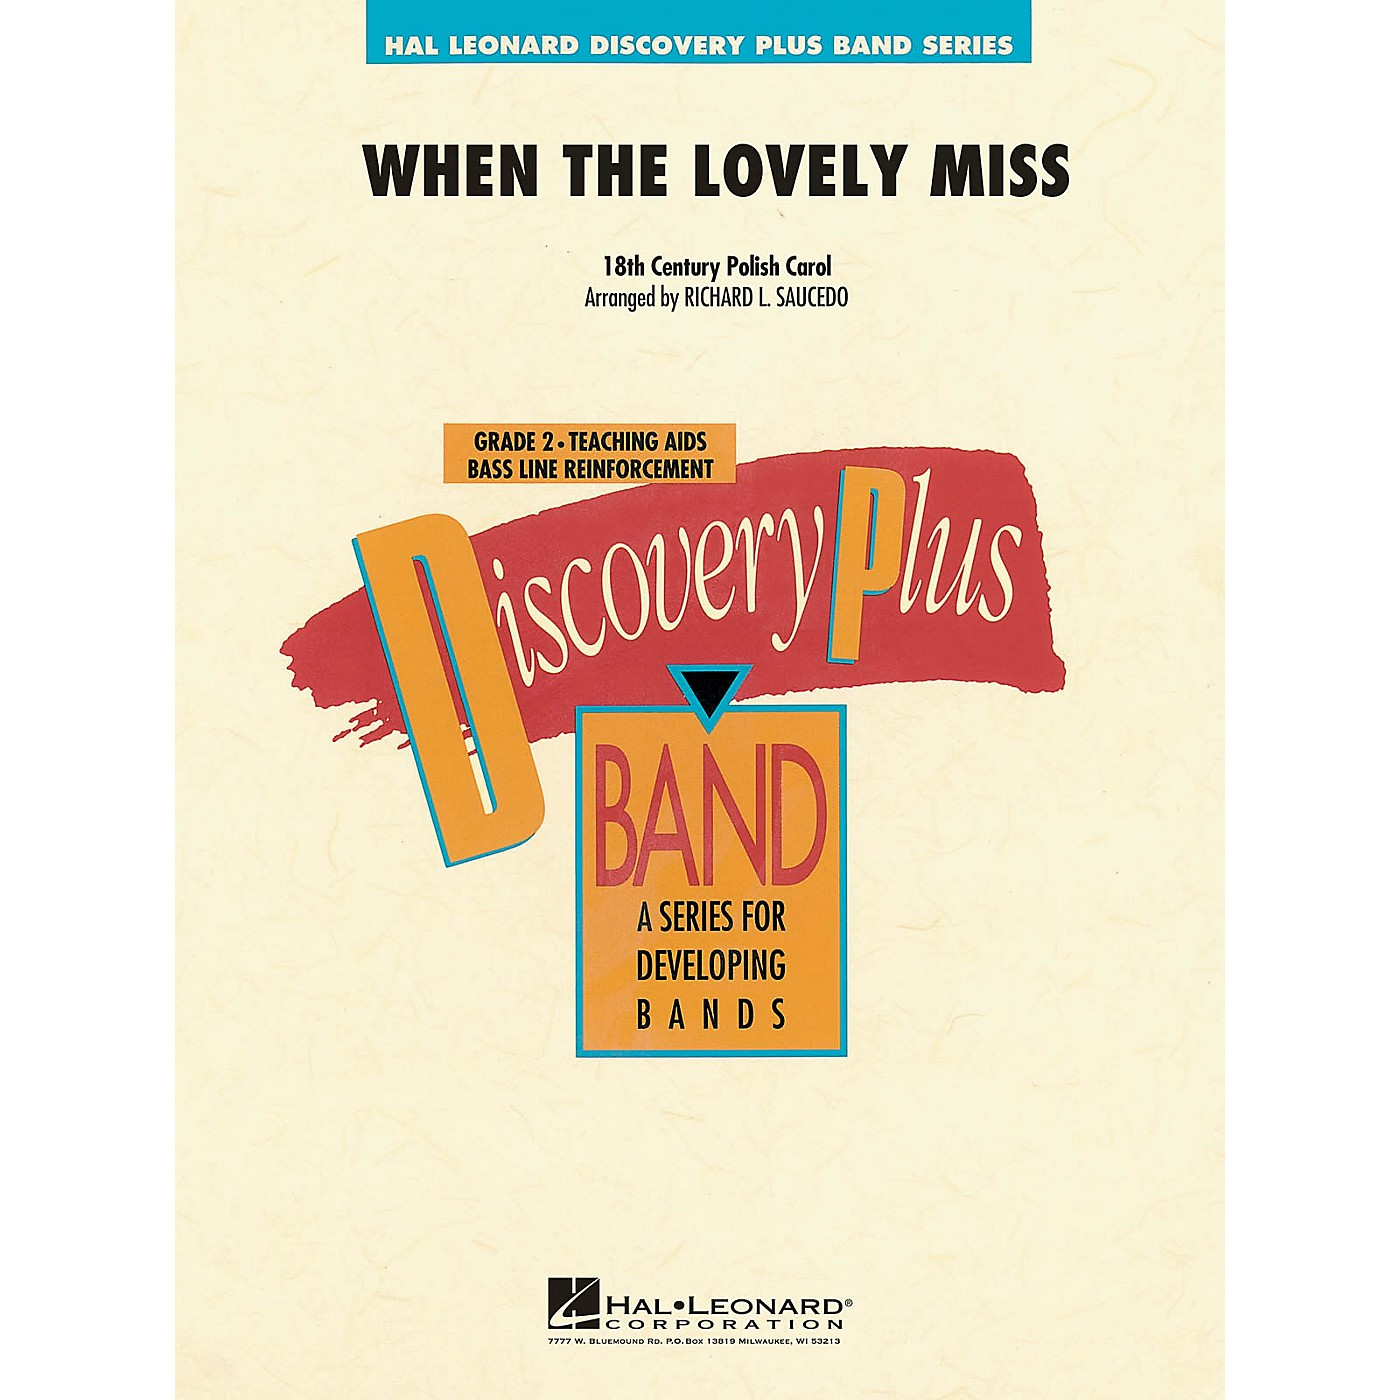 Hal Leonard When the Lovely Miss - Discovery Plus Concert Band Series Level 2 arranged by Richard L. Saucedo thumbnail